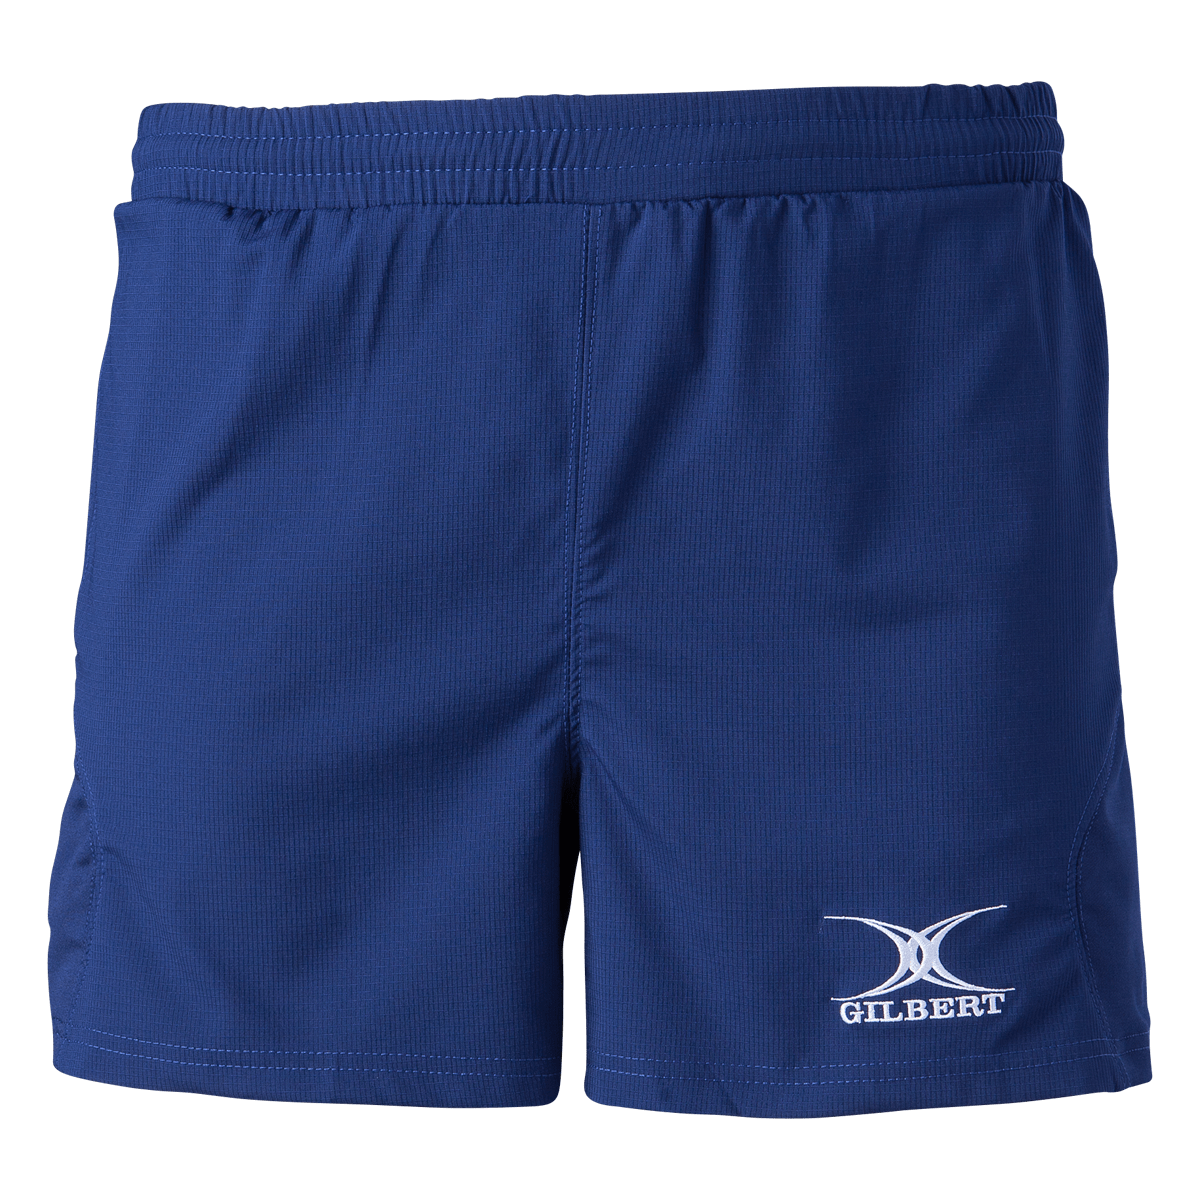 Gilbert Navy Virtuo Match Shorts